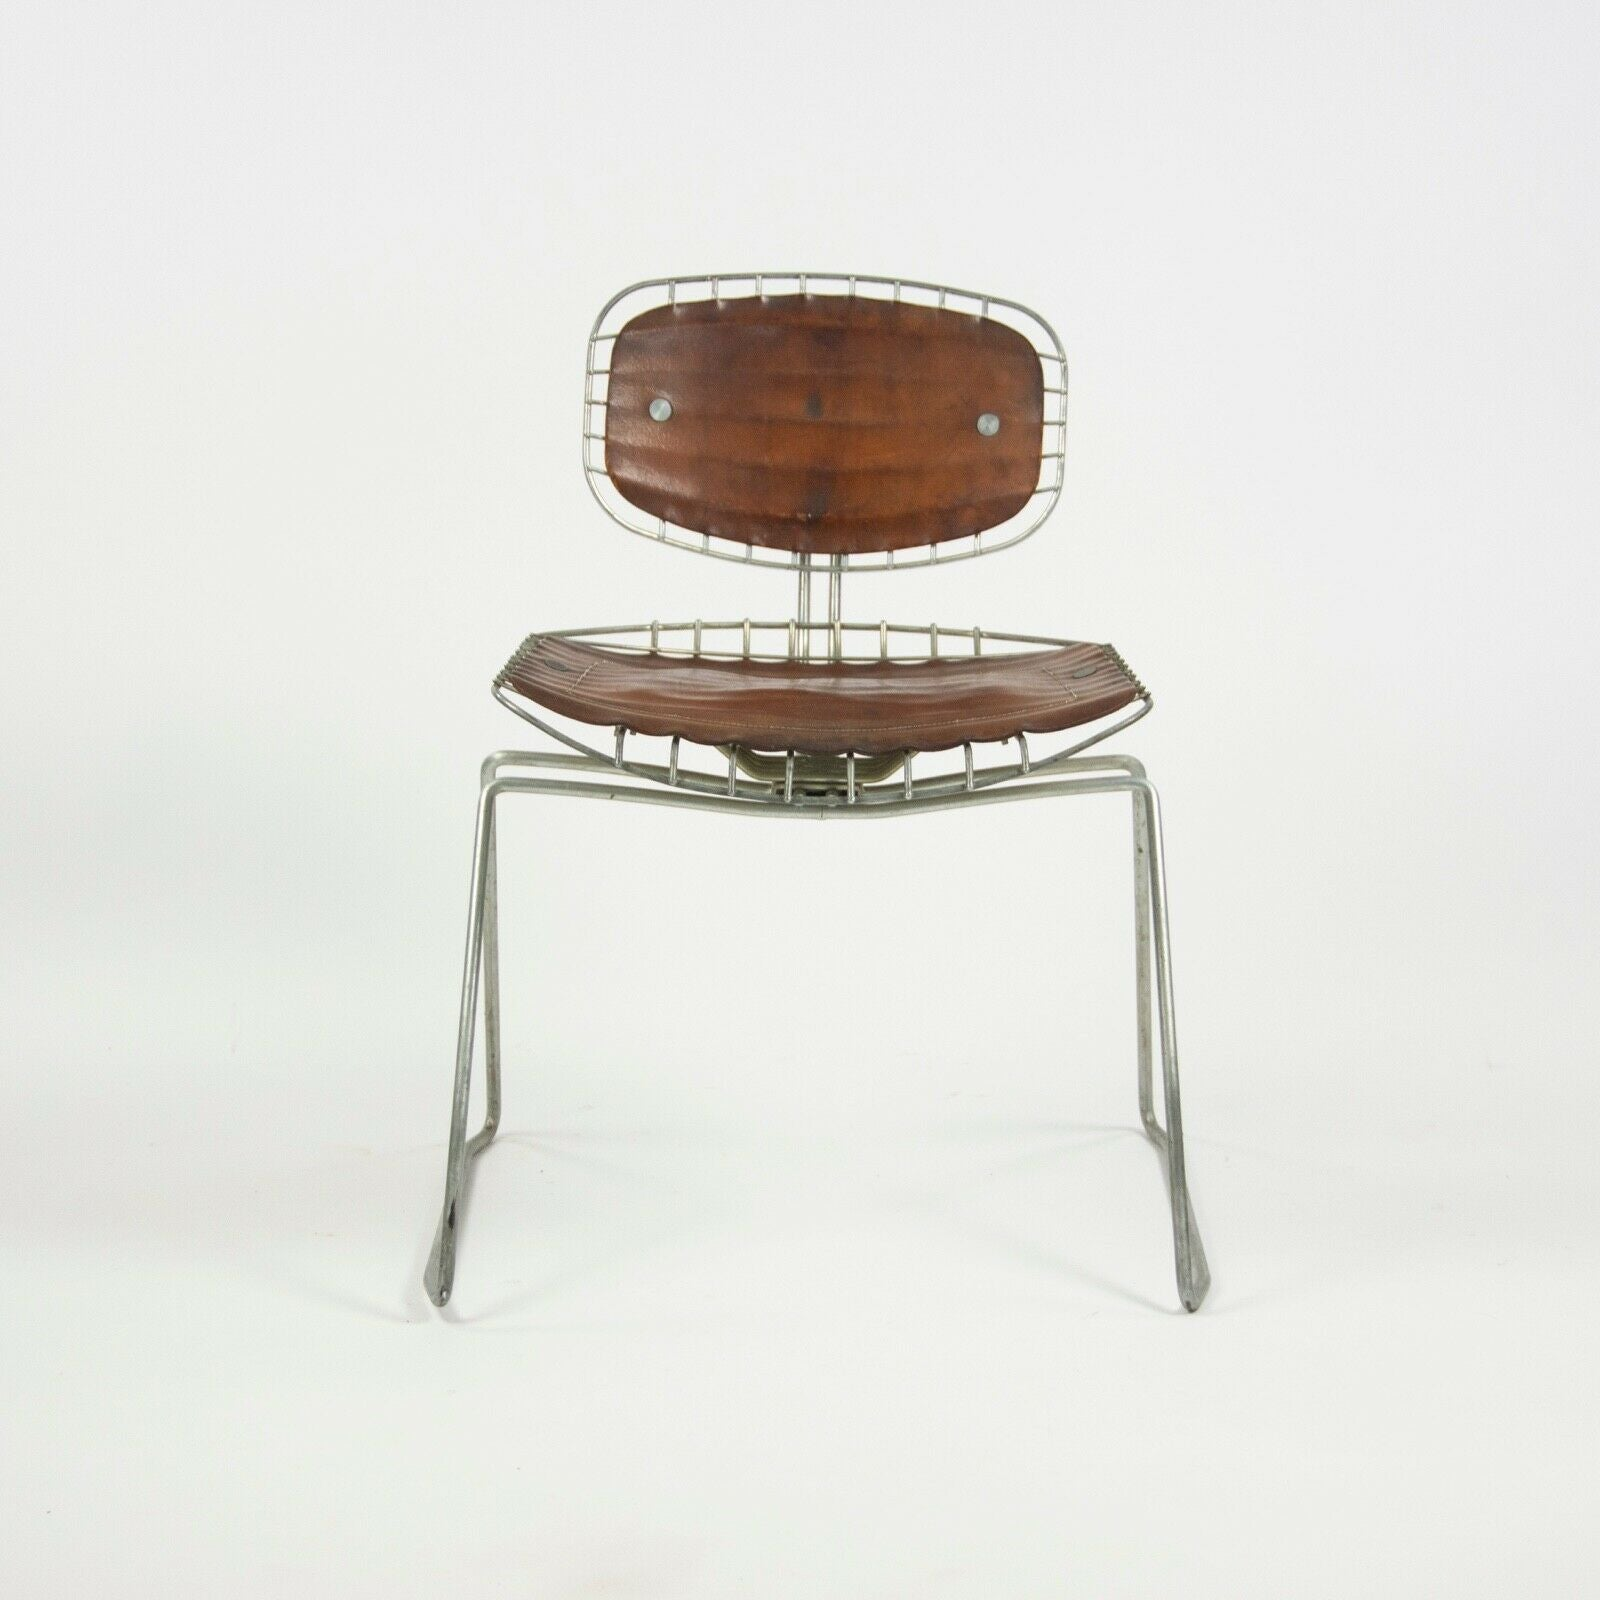 1976 Michel Cadestin & Georges Laurent Beaubourg Chair Teda France for Centre Pompidou